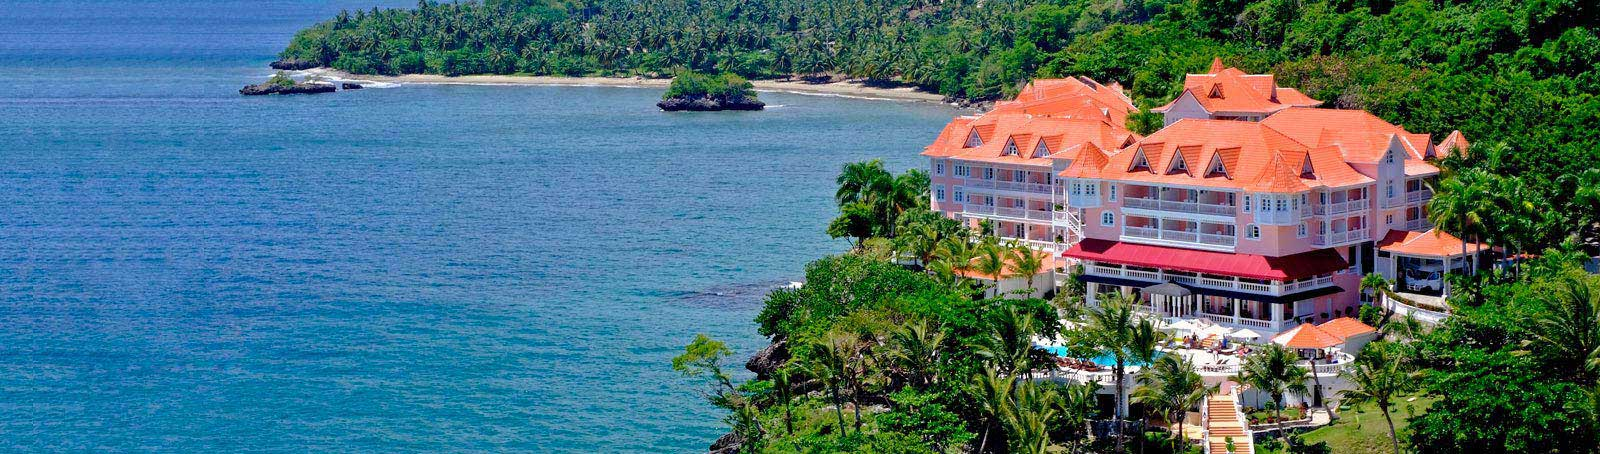 Luxury Bahia Principe Samana All Inclusive Dominican Republic